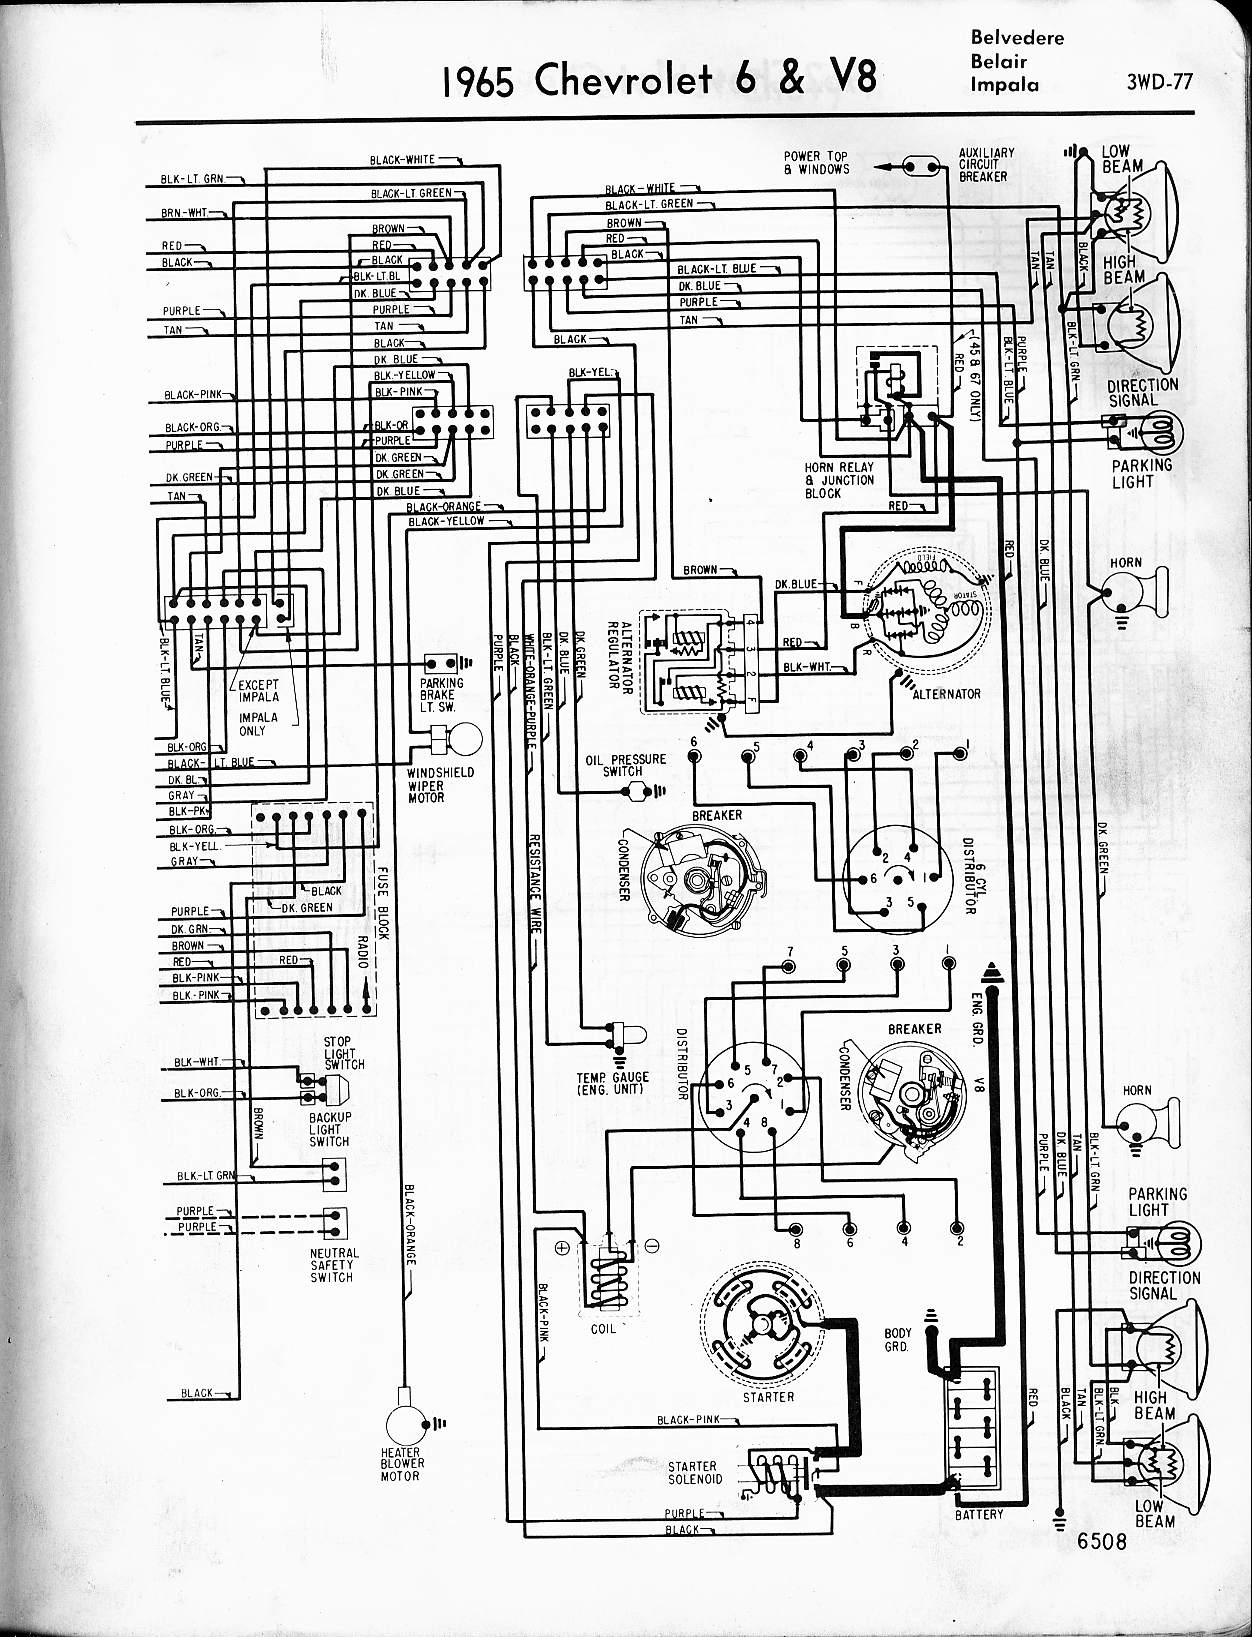 Chevy diagrams 70 Chevy Truck Wiring Diagram 1983 El Camino Vacuum Diagram 1970 Chevelle Wiring Harness Diagram on 70 chevelle wiring harness diagram